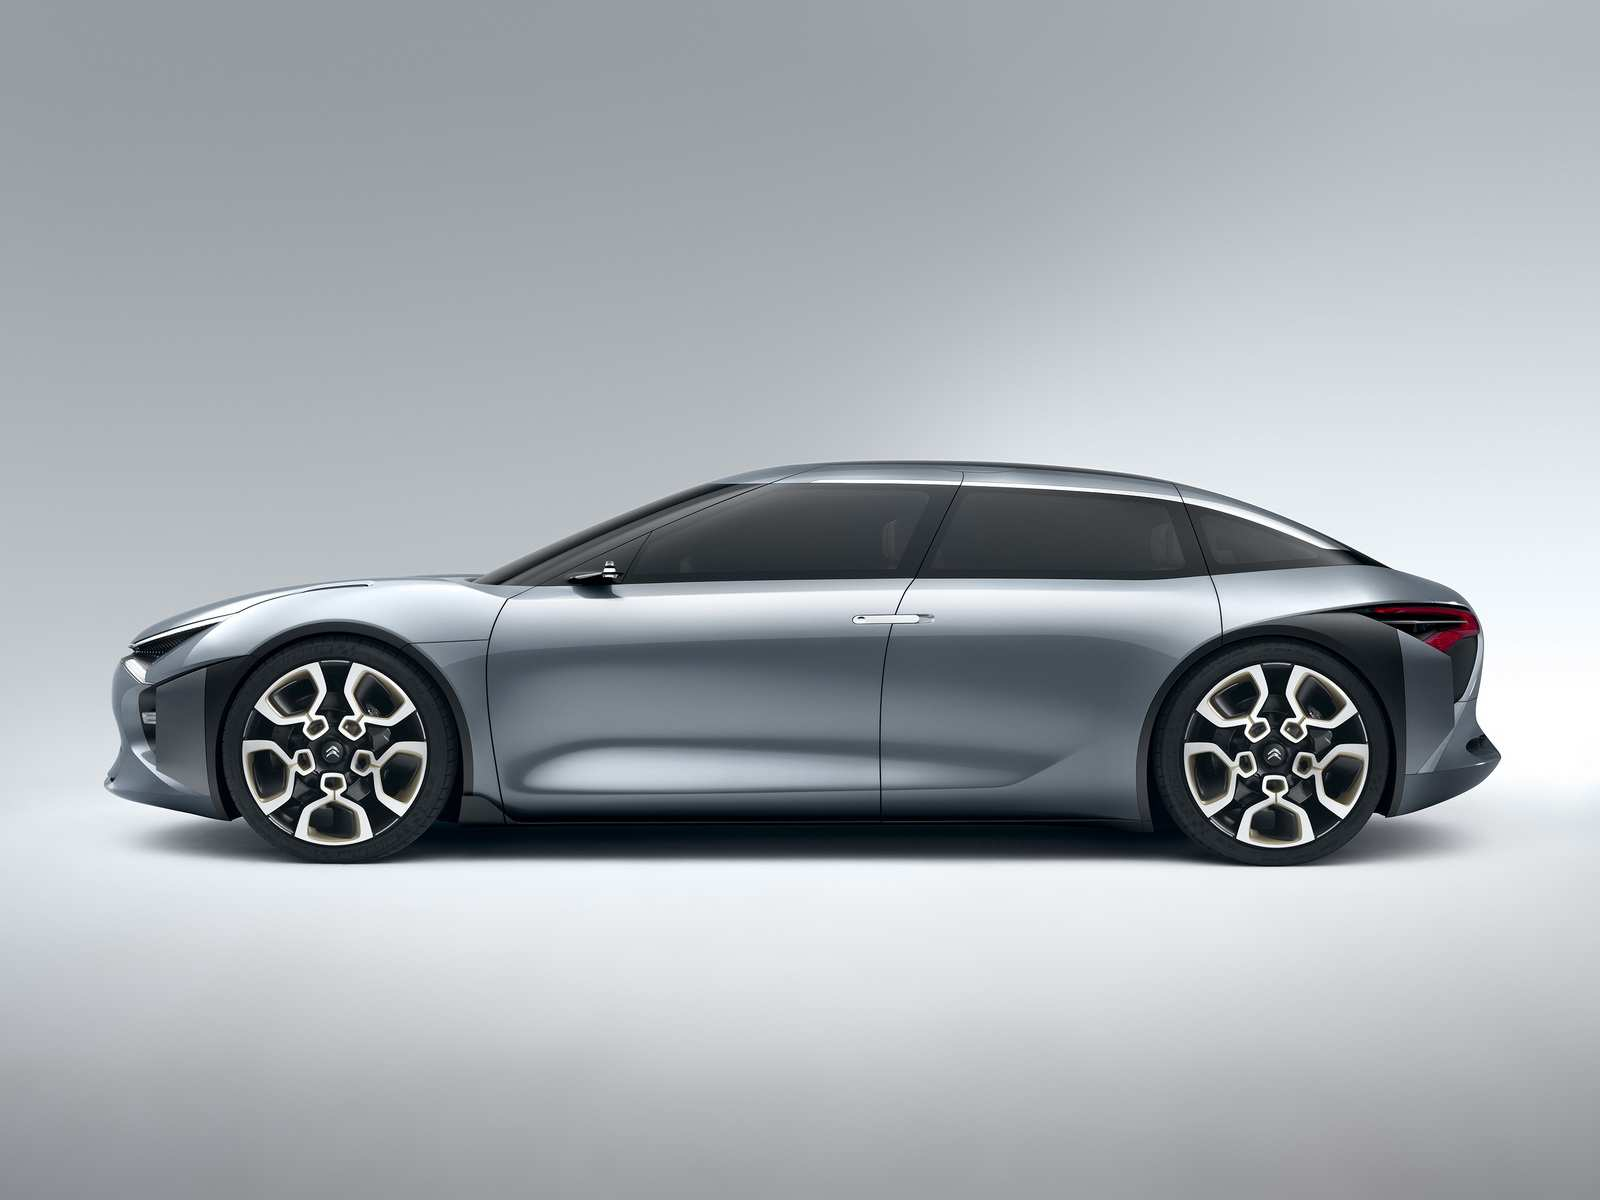 76 New 2020 Citroen Redesign and Concept with 2020 Citroen